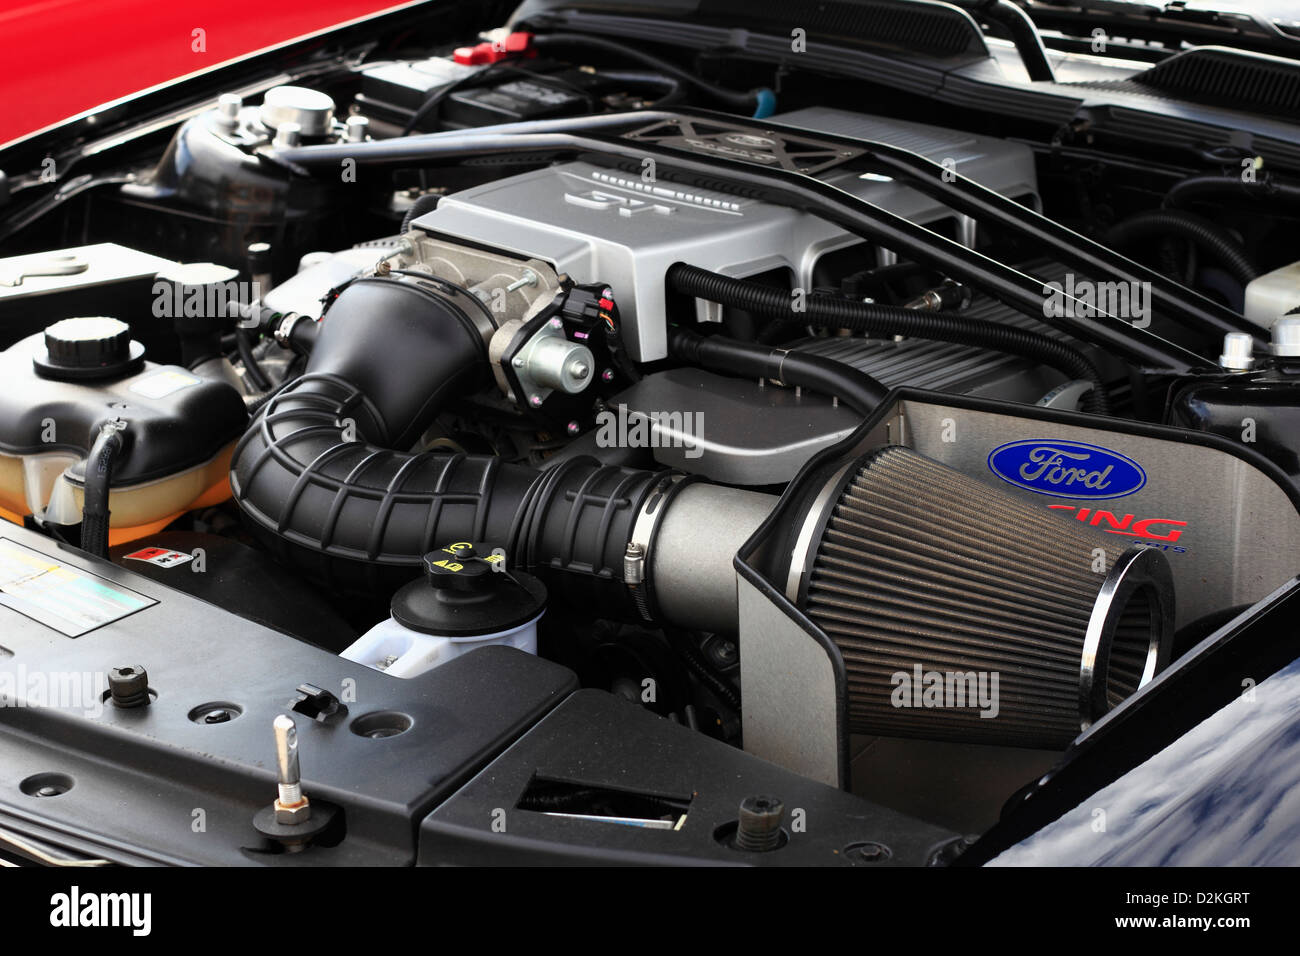 A 4 6 liter v8 ford racing engine in a 2007 shelby mustang gt car